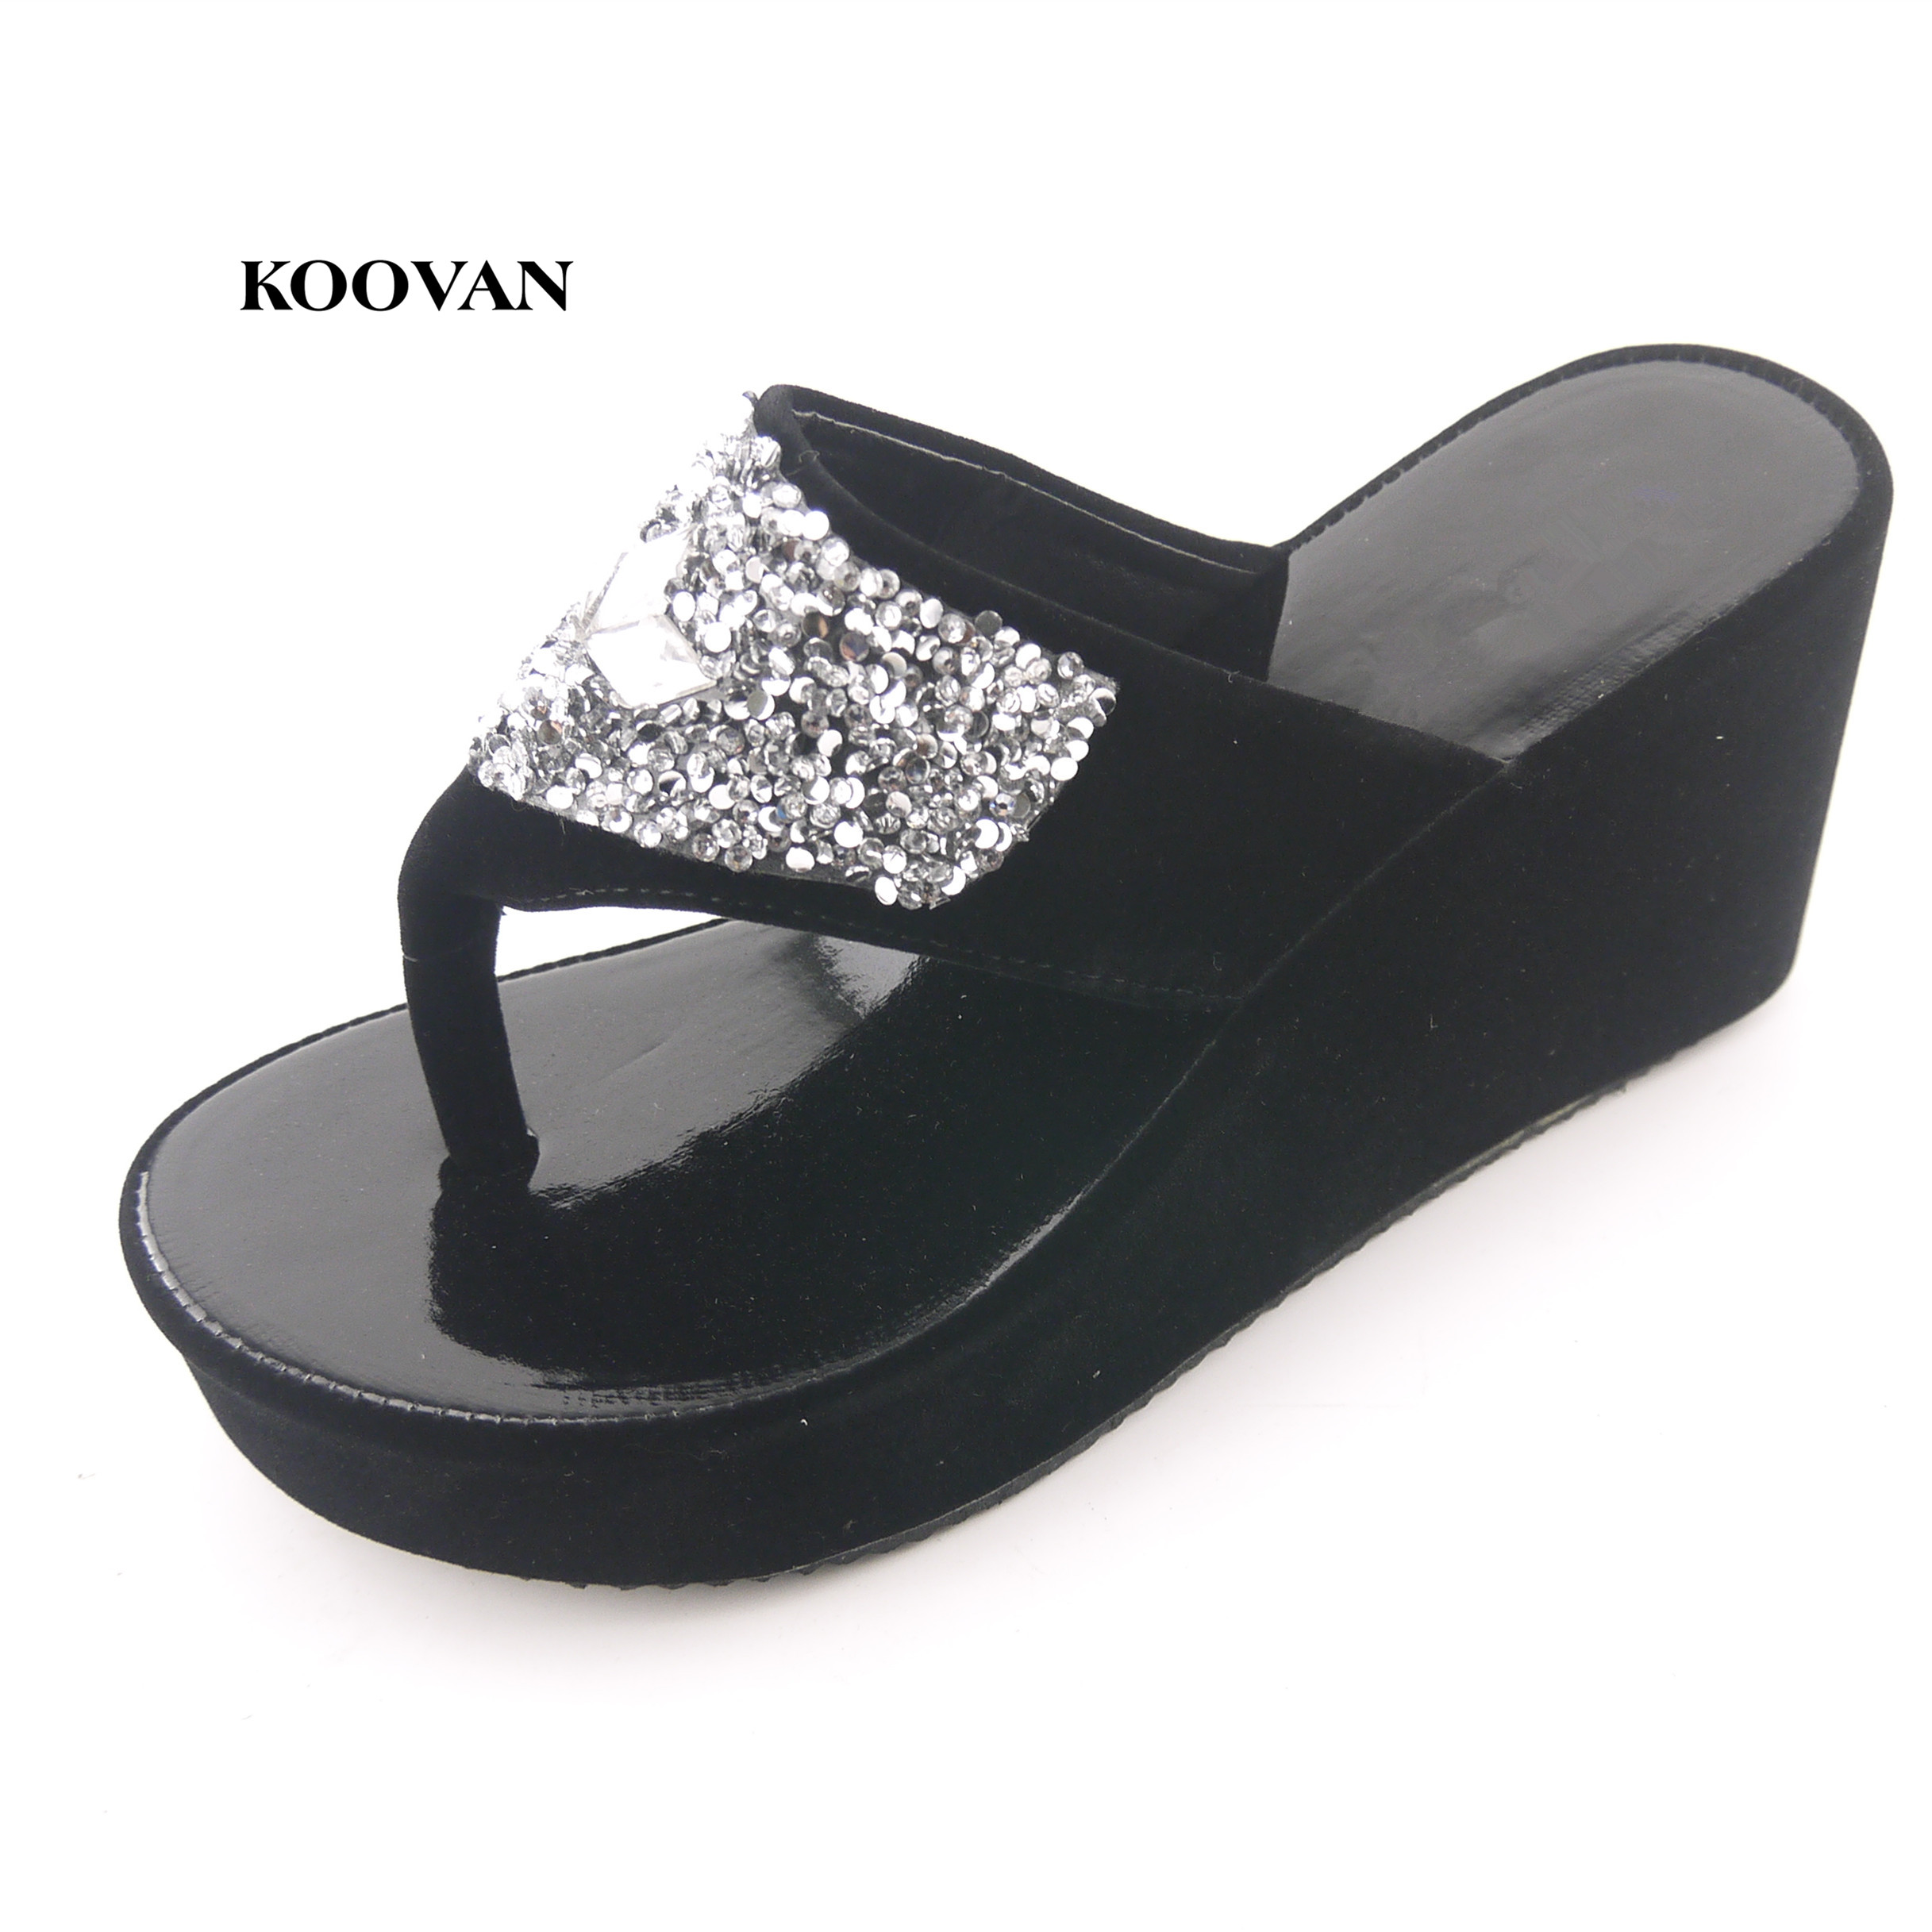 Koova Summer New Fashion Women Shoes Roman Women Sandals Flip  Heavy-bottomed Muffin Women Sandals And Slippers Diamond Shoes cd82e4bfae12